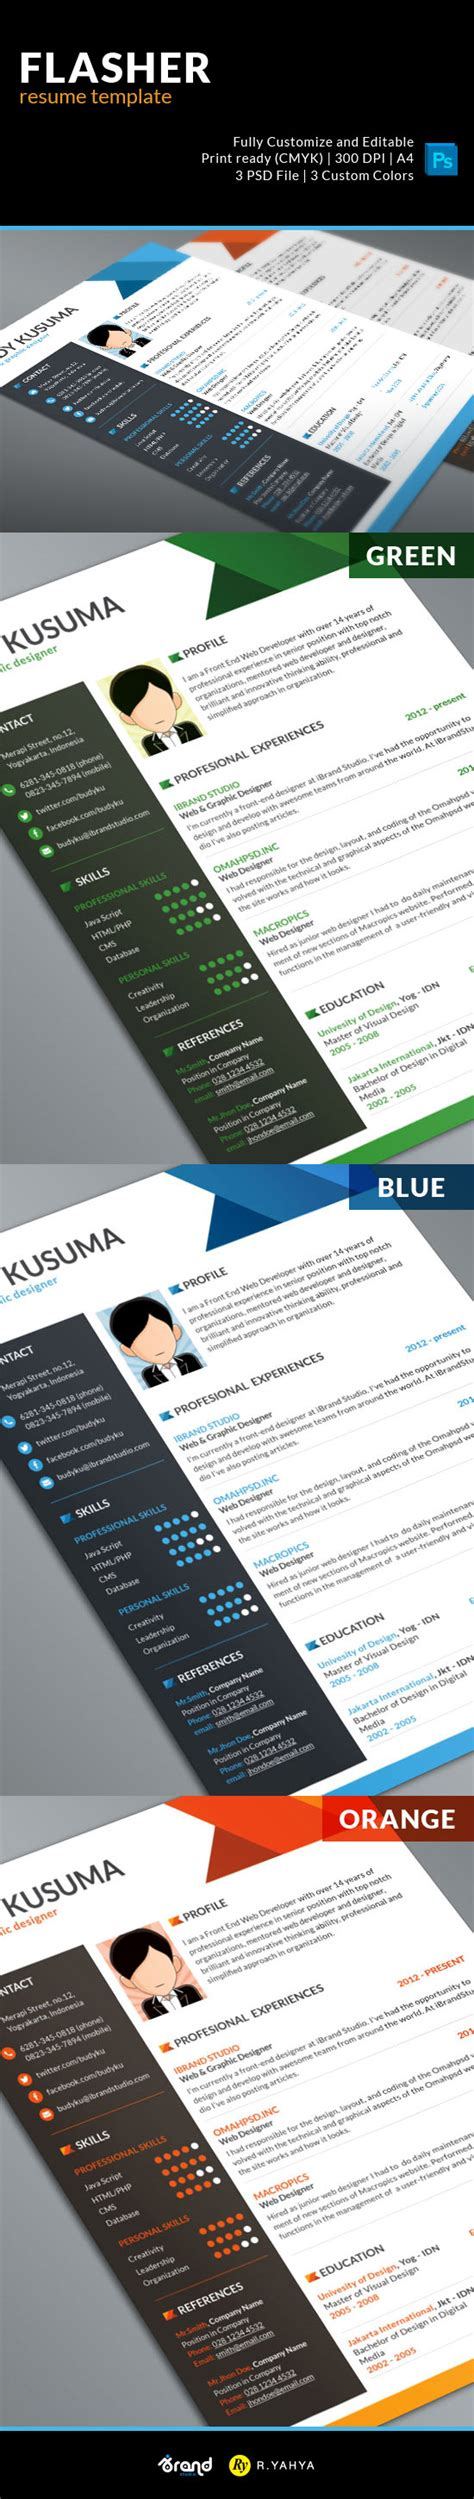 20836 resume templates to free resume template flasher 3 colors psd